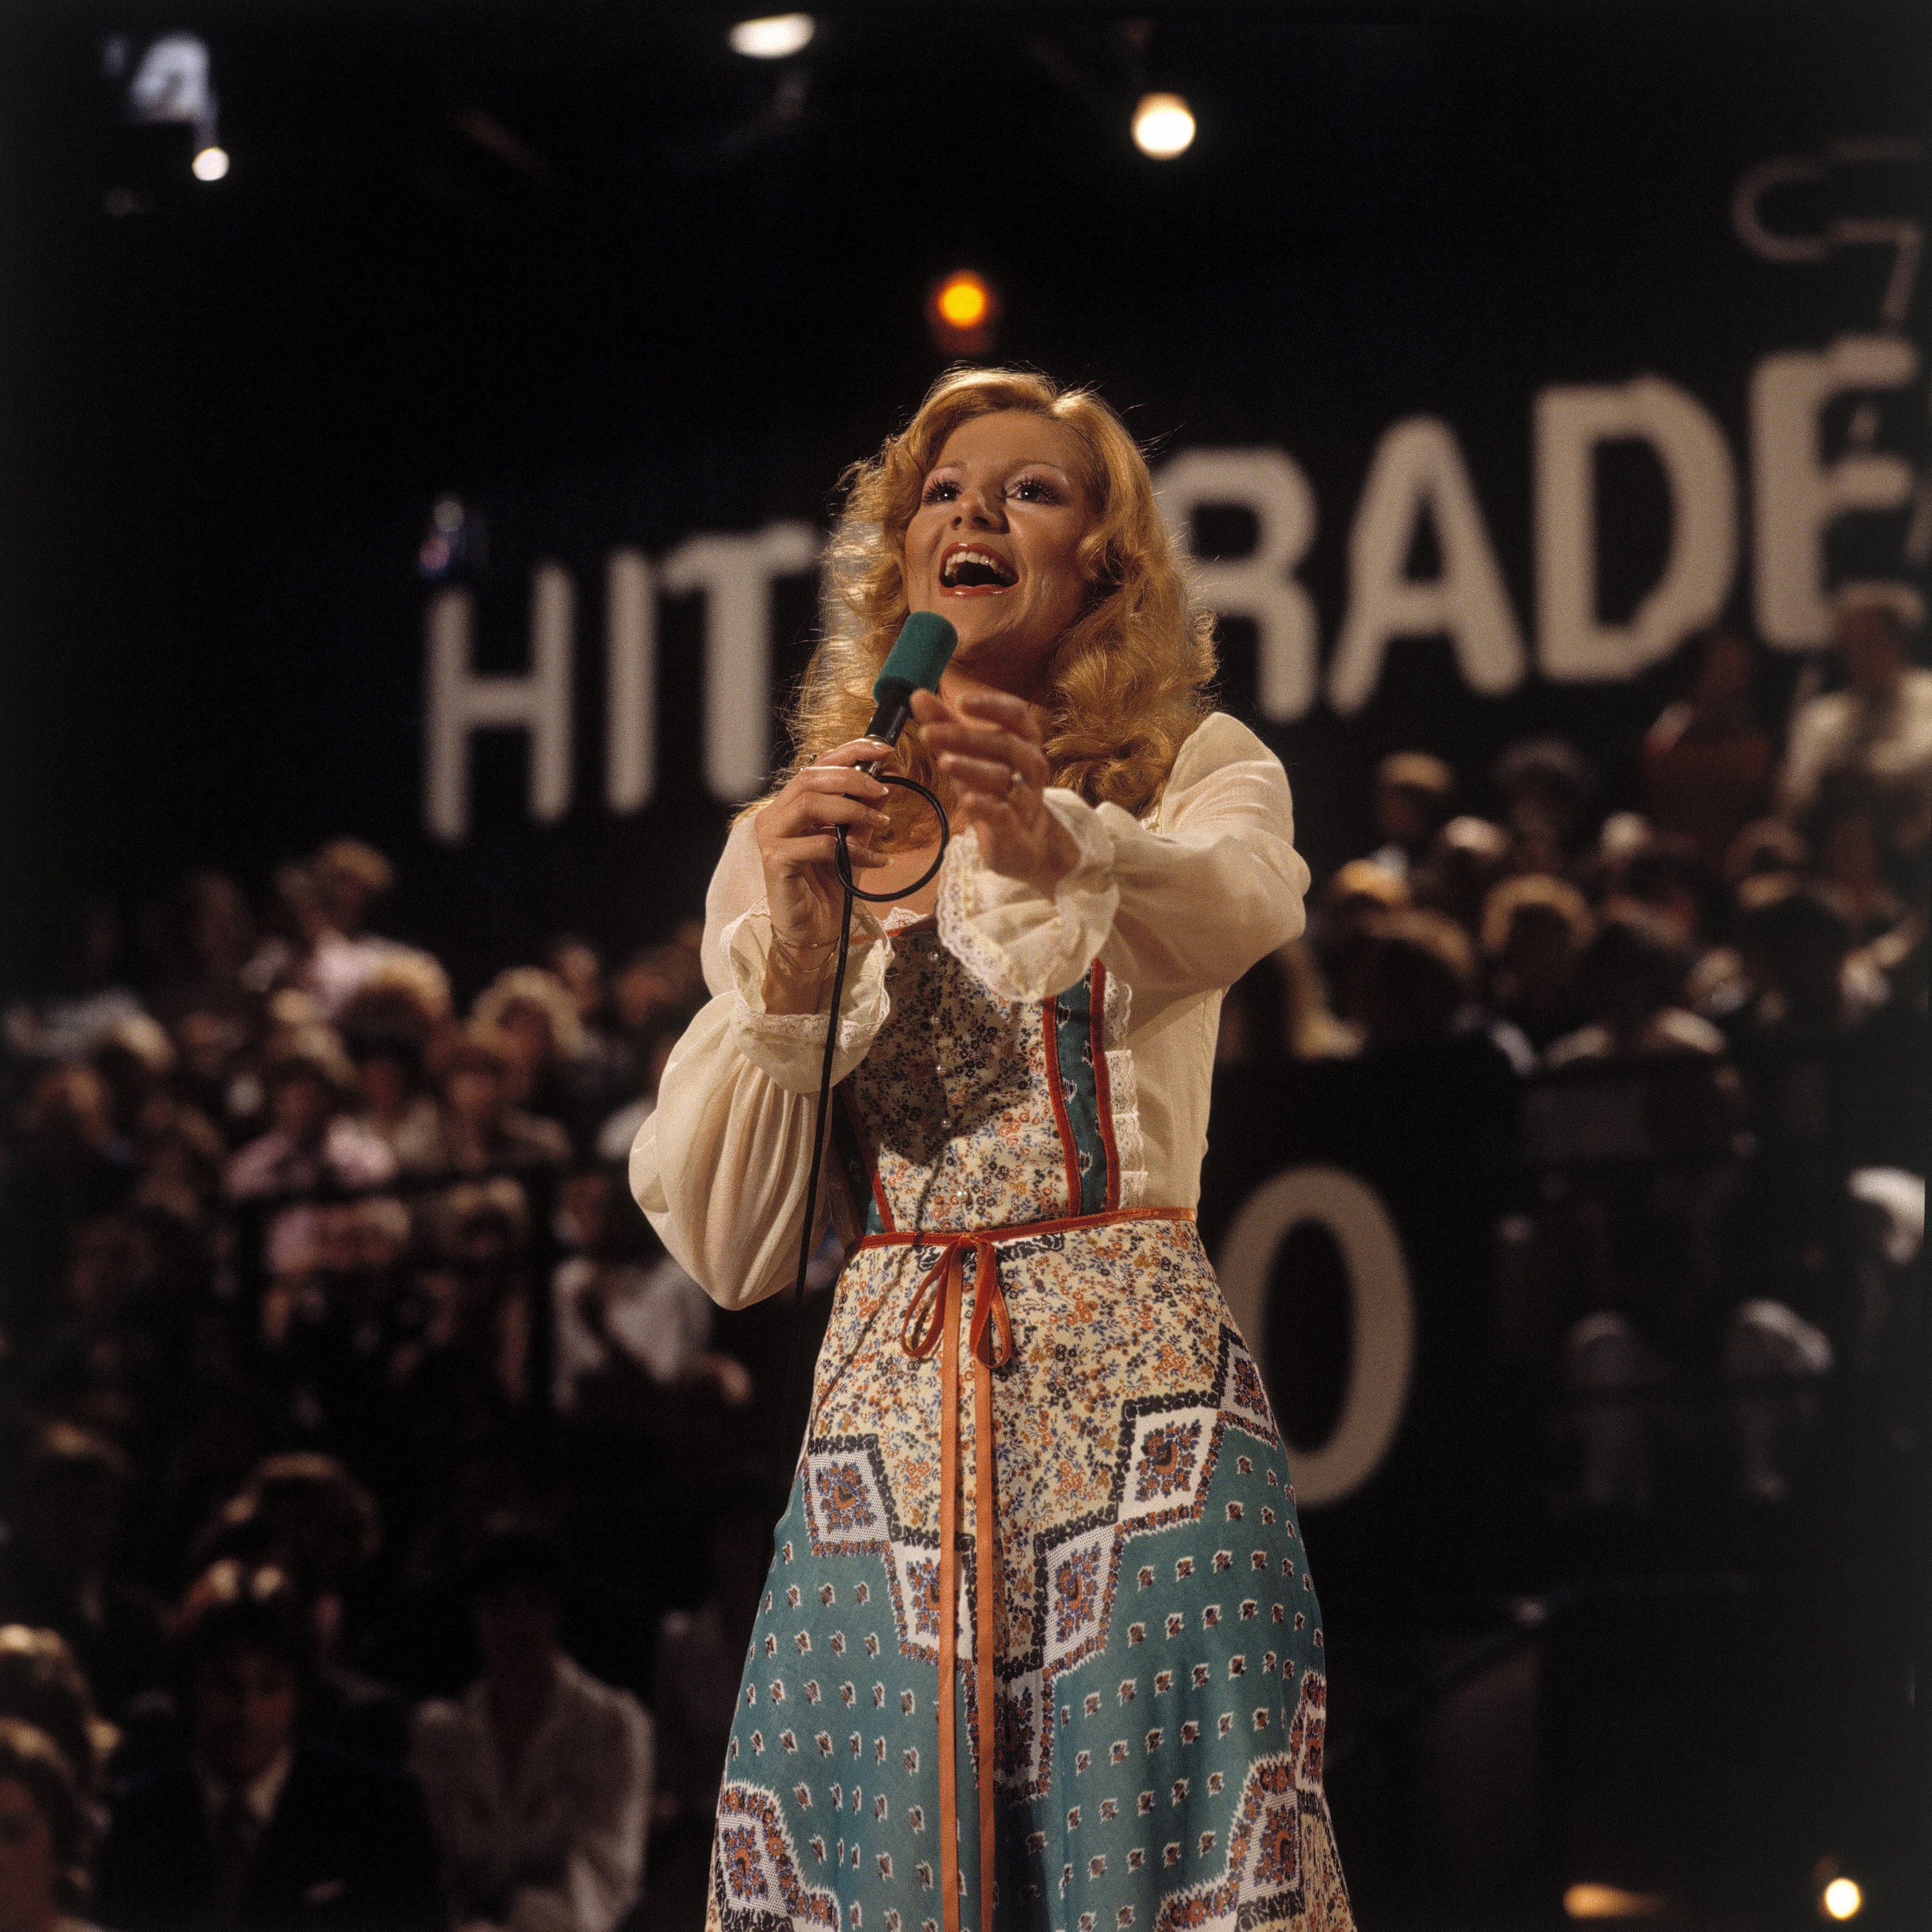 Hit Parade, Peggy March, 1978 | Quelle: Getty Images